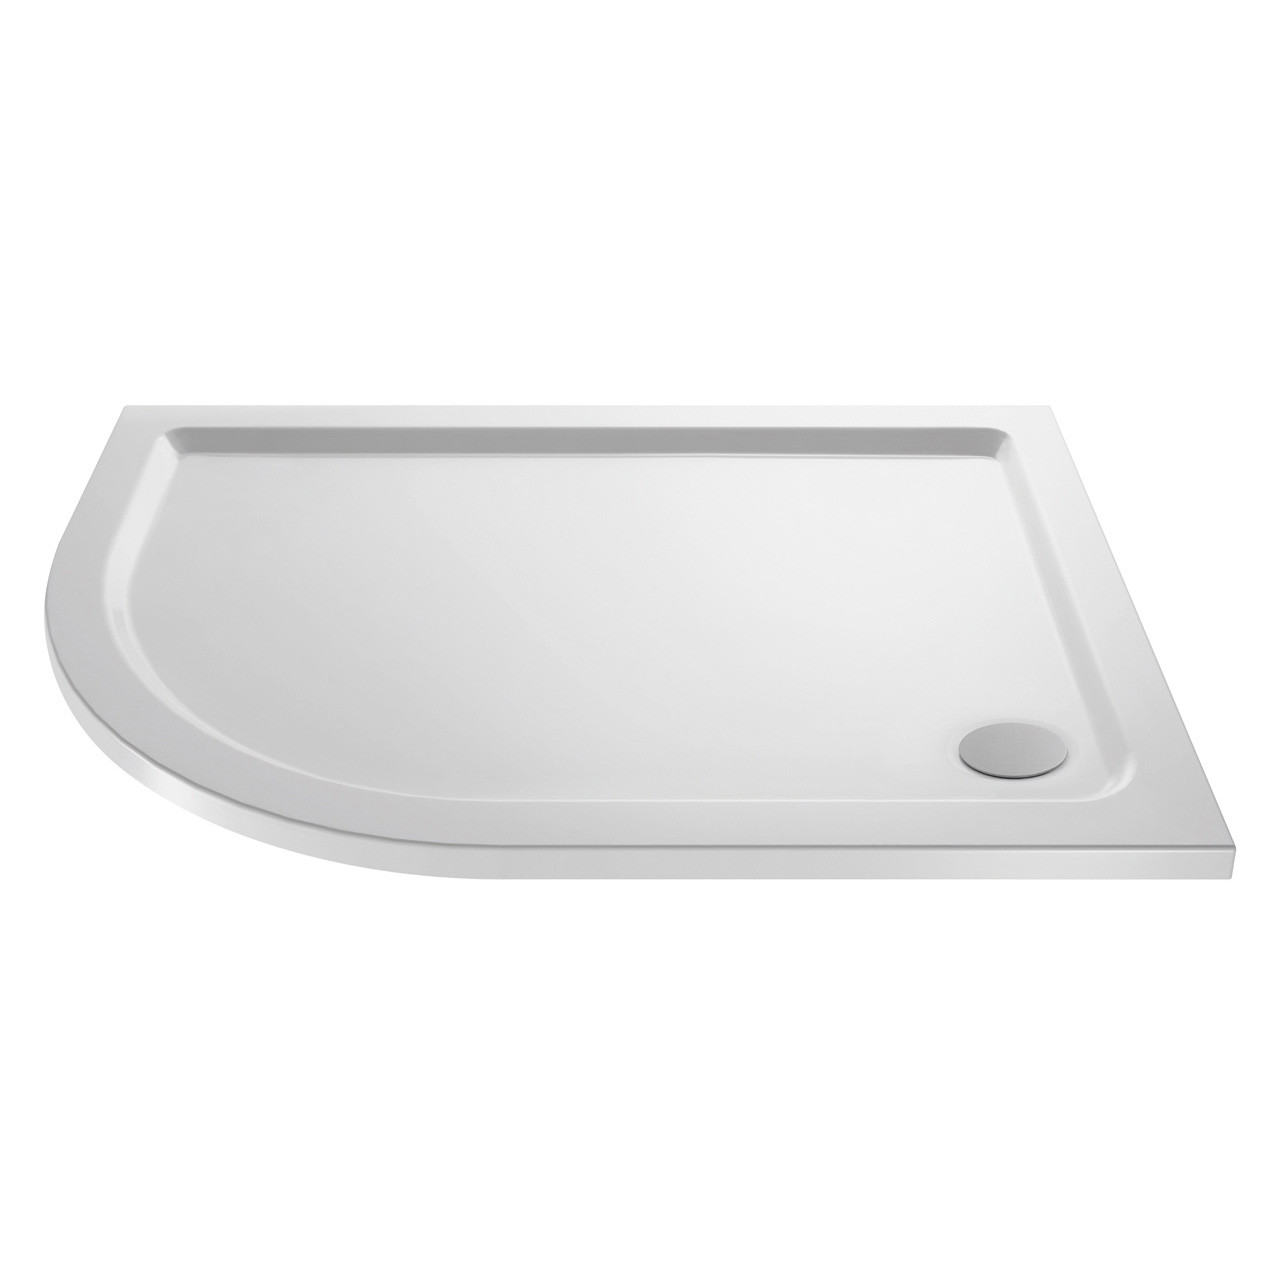 Premiere Pearlstone 1200mm x 900mm x 40mm Left Hand Offset Quadrant Shower Tray - NTP114